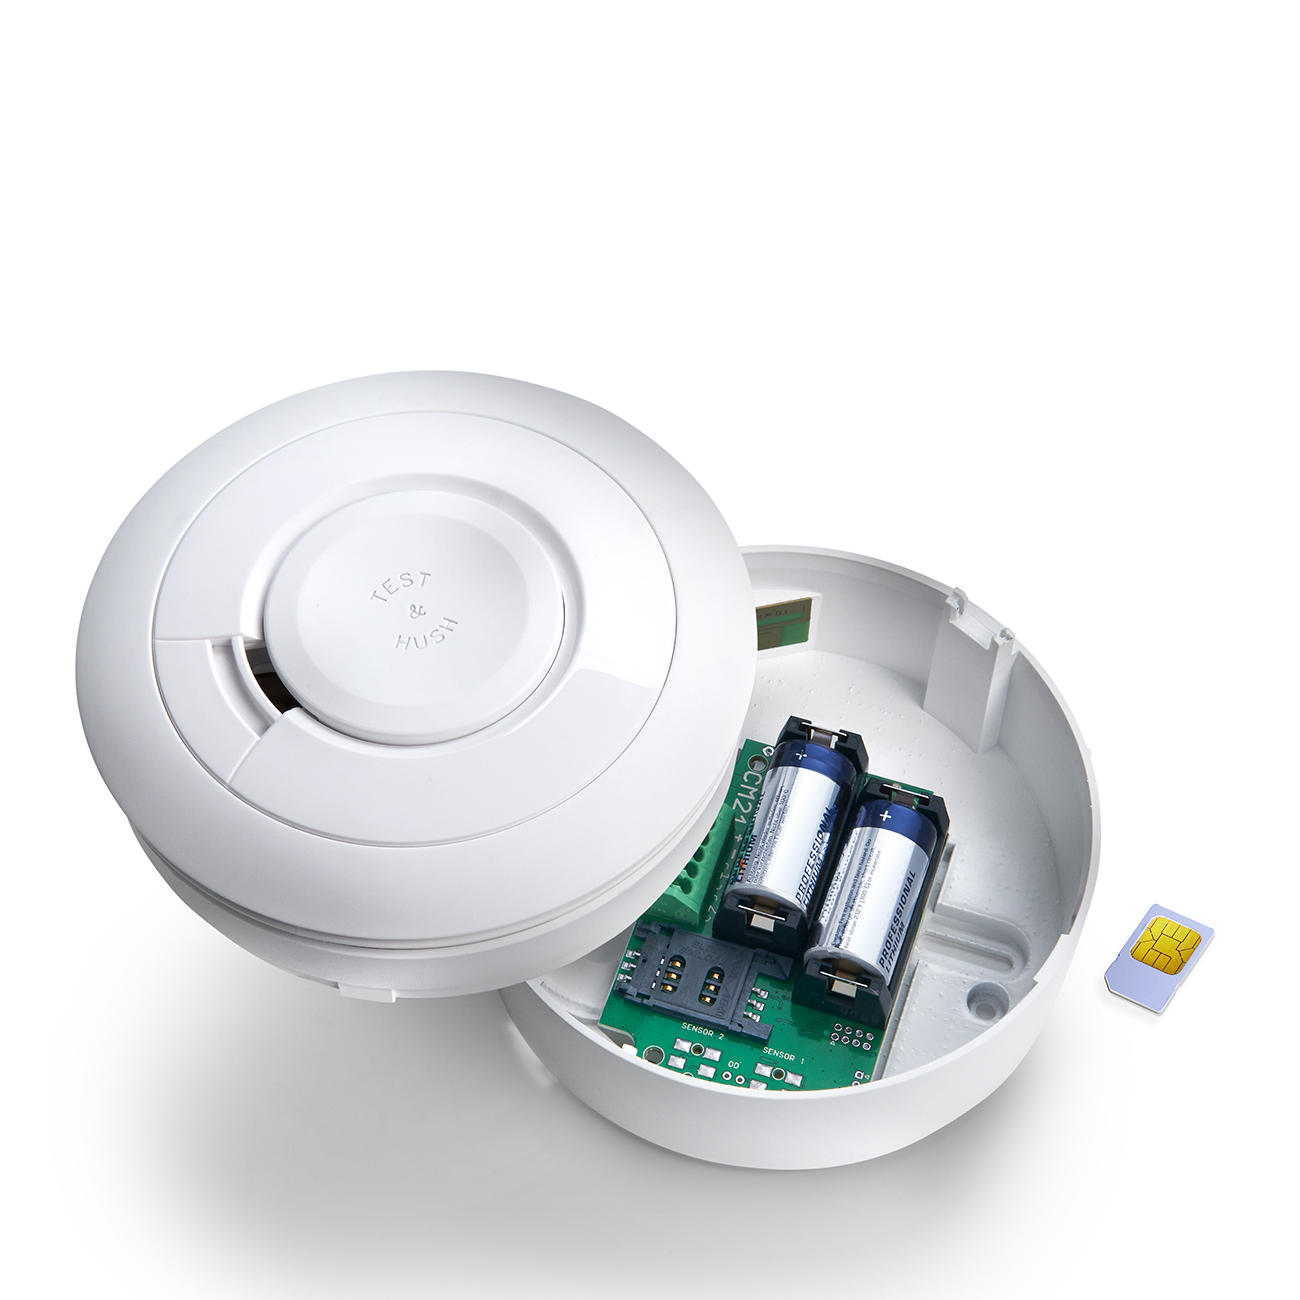 mobeye gsm smoke detector rauchmelder informiert per sms oder anruf. Black Bedroom Furniture Sets. Home Design Ideas